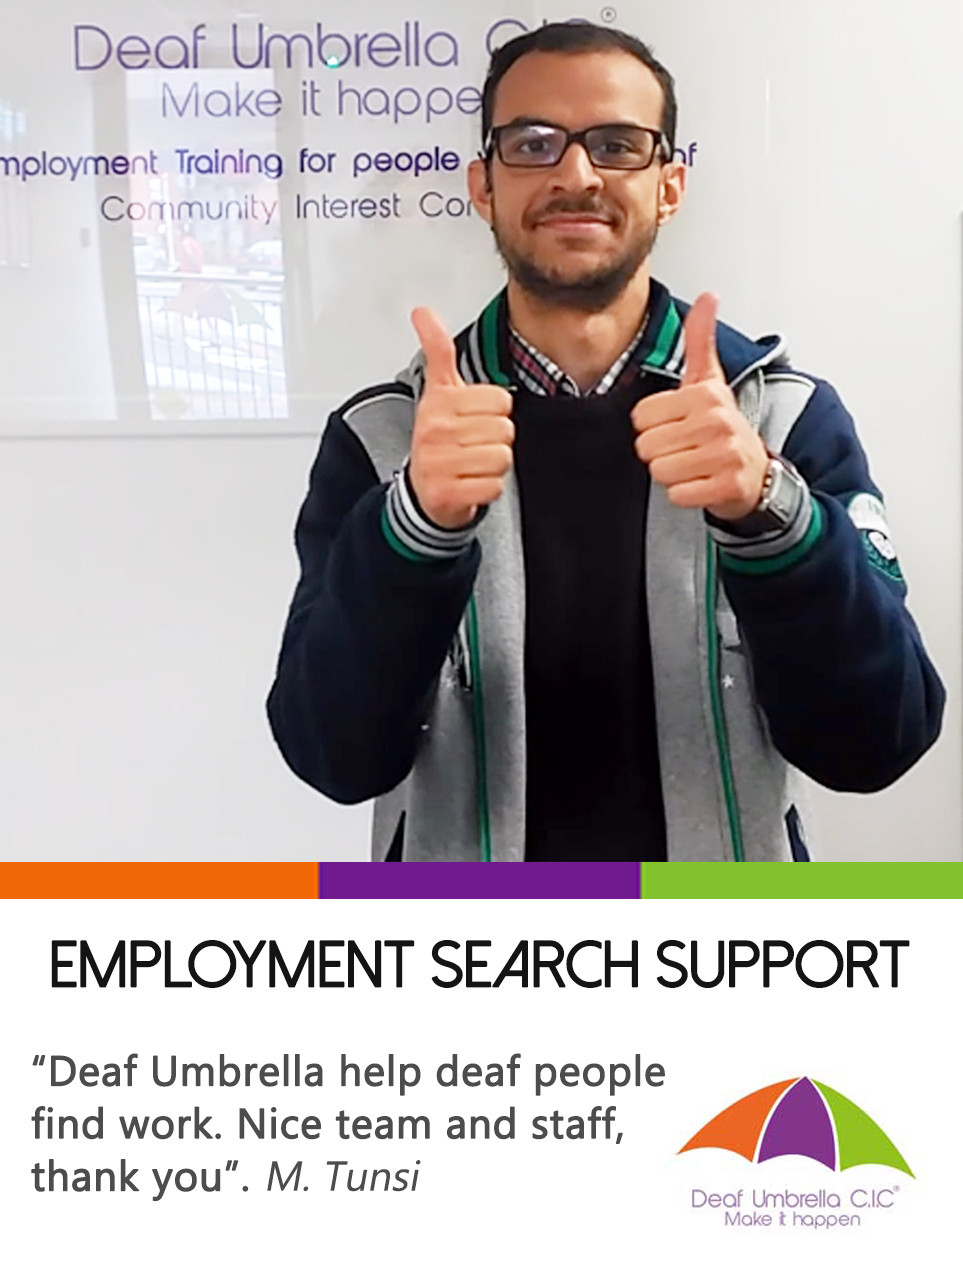 Job Club for Deaf and Hard of Hearing people by Deaf Umbrella